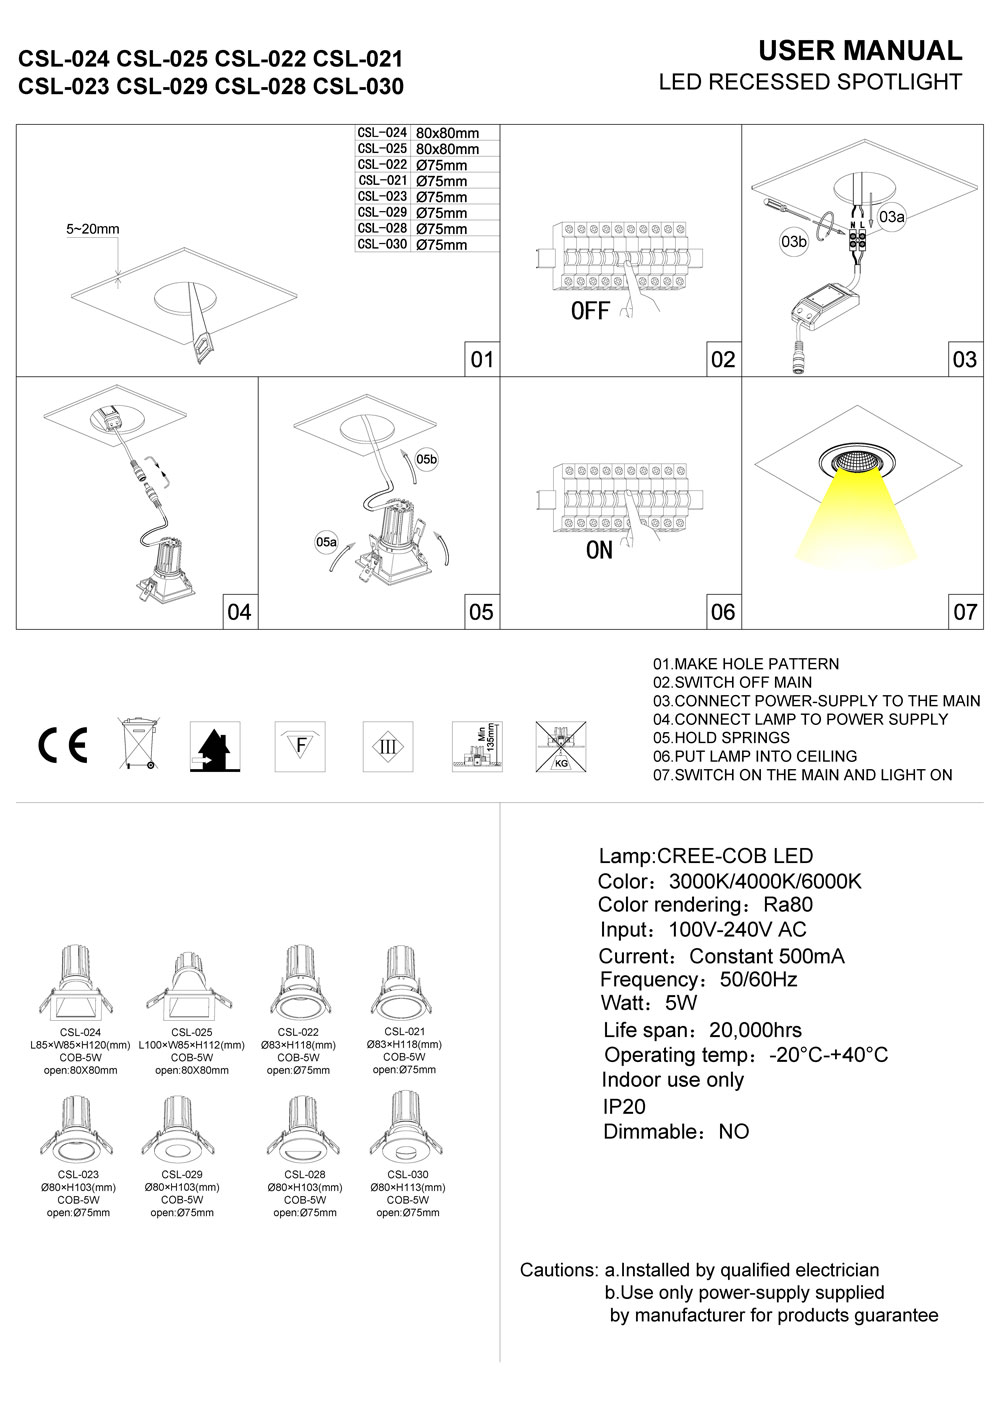 Csl022 5 Watt Black Round Recessed Led Downlight Fitting Wiring Diagram